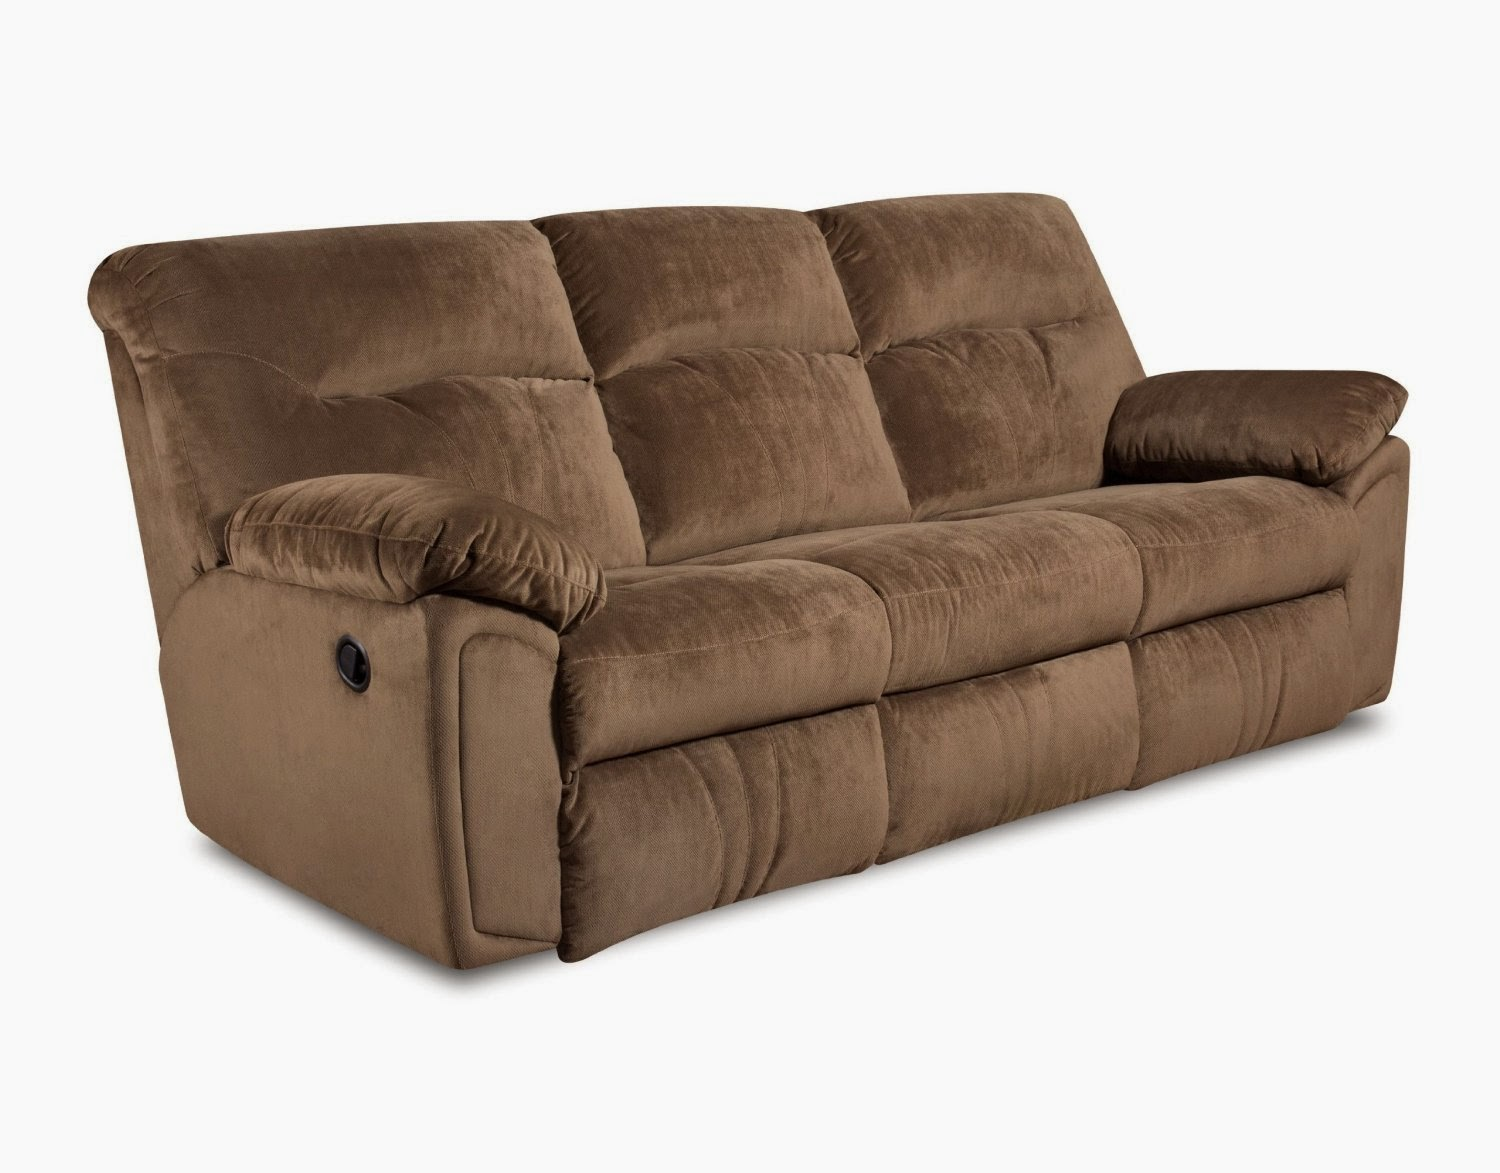 Reclinable Sectional Sofas Camel Sofa Reclining Loveseat And Chair Sets Southern Motion